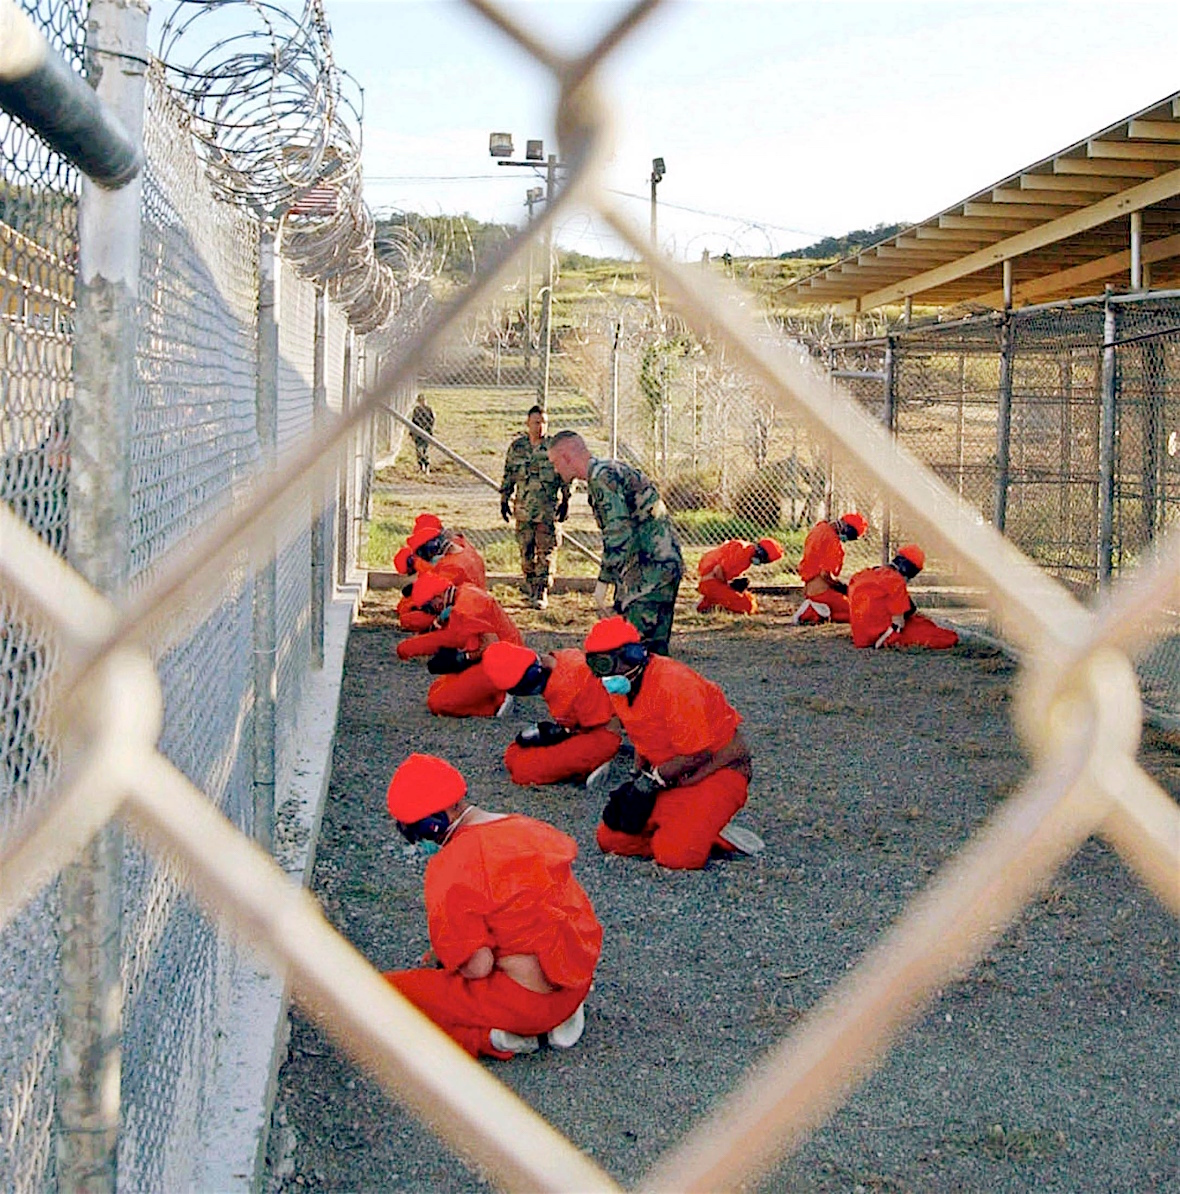 One of the photos taken on the day Guantanamo opened, January 11, 2002, by Shane T. McCoy of the US Navy.